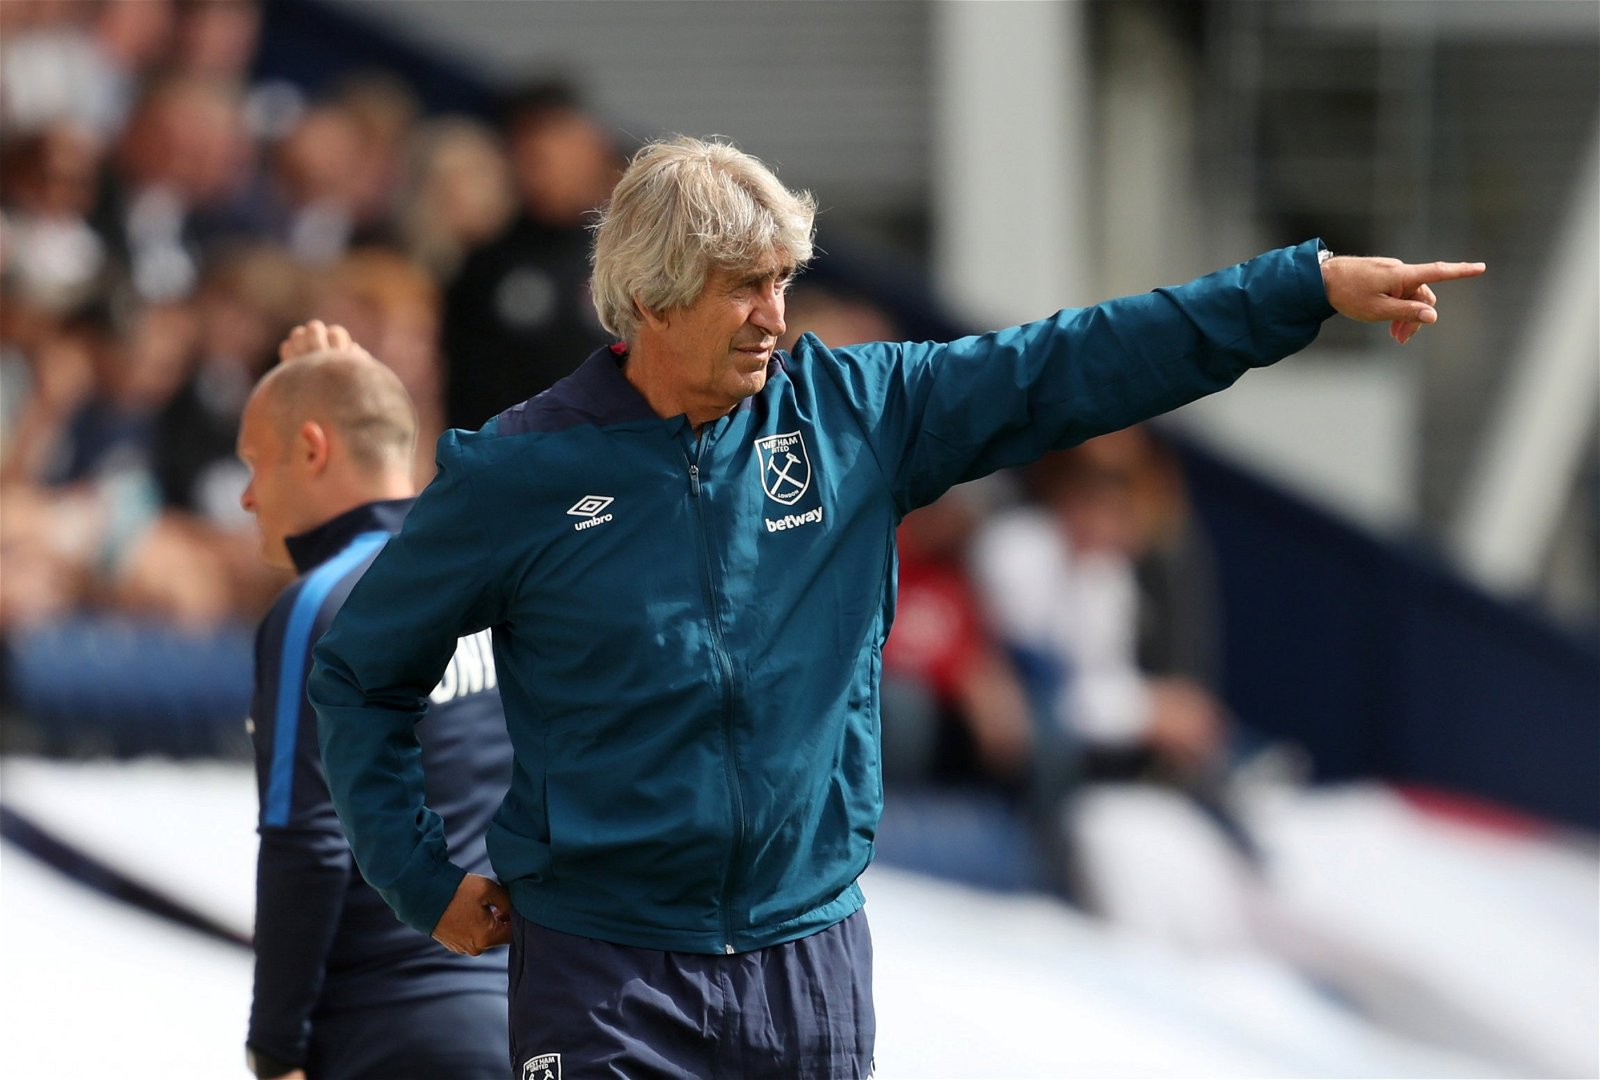 West Ham United manager Manuel Pellegrini gestures on the touchline during a friendly against Preston